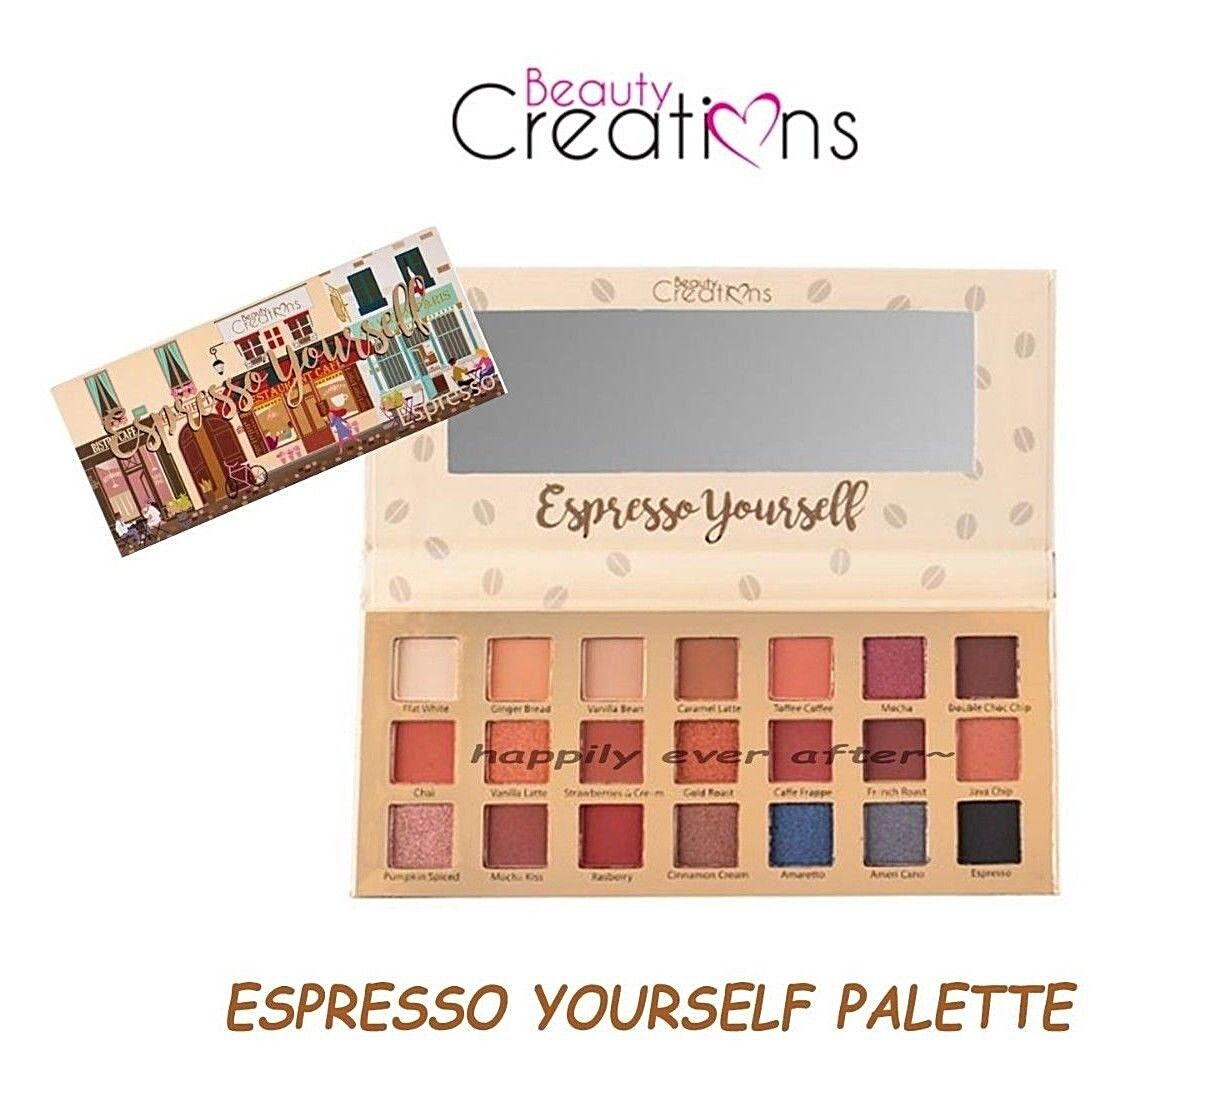 Beauty Creations Espresso Yourself Palette- 21 Colors Eyesha